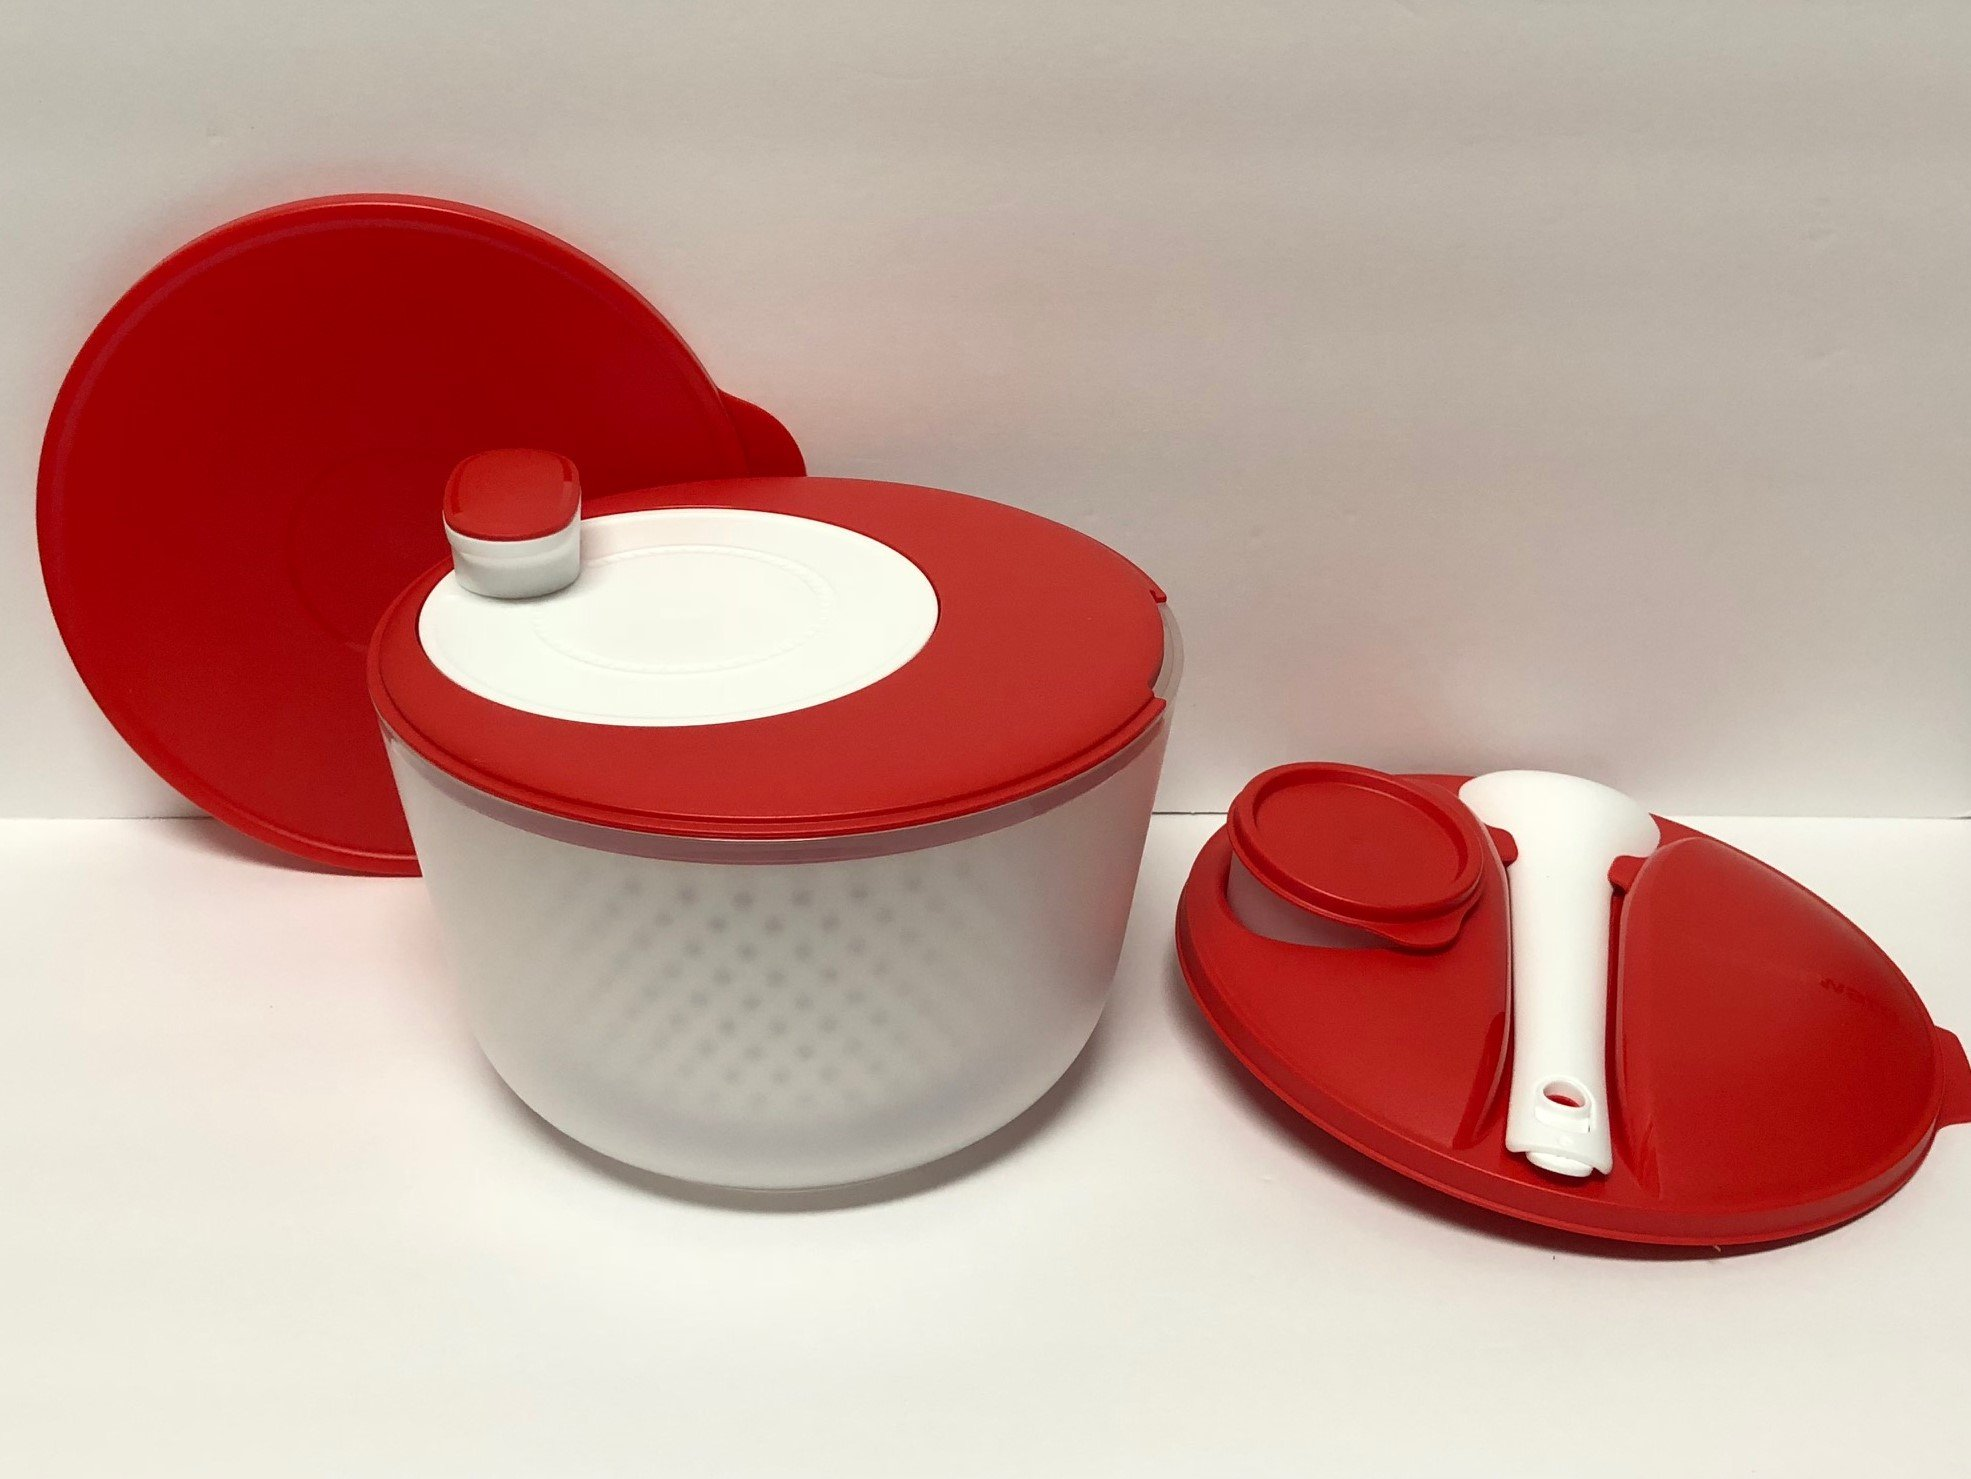 Tupperware Spin 'N Save Salad Spinner Chili Red